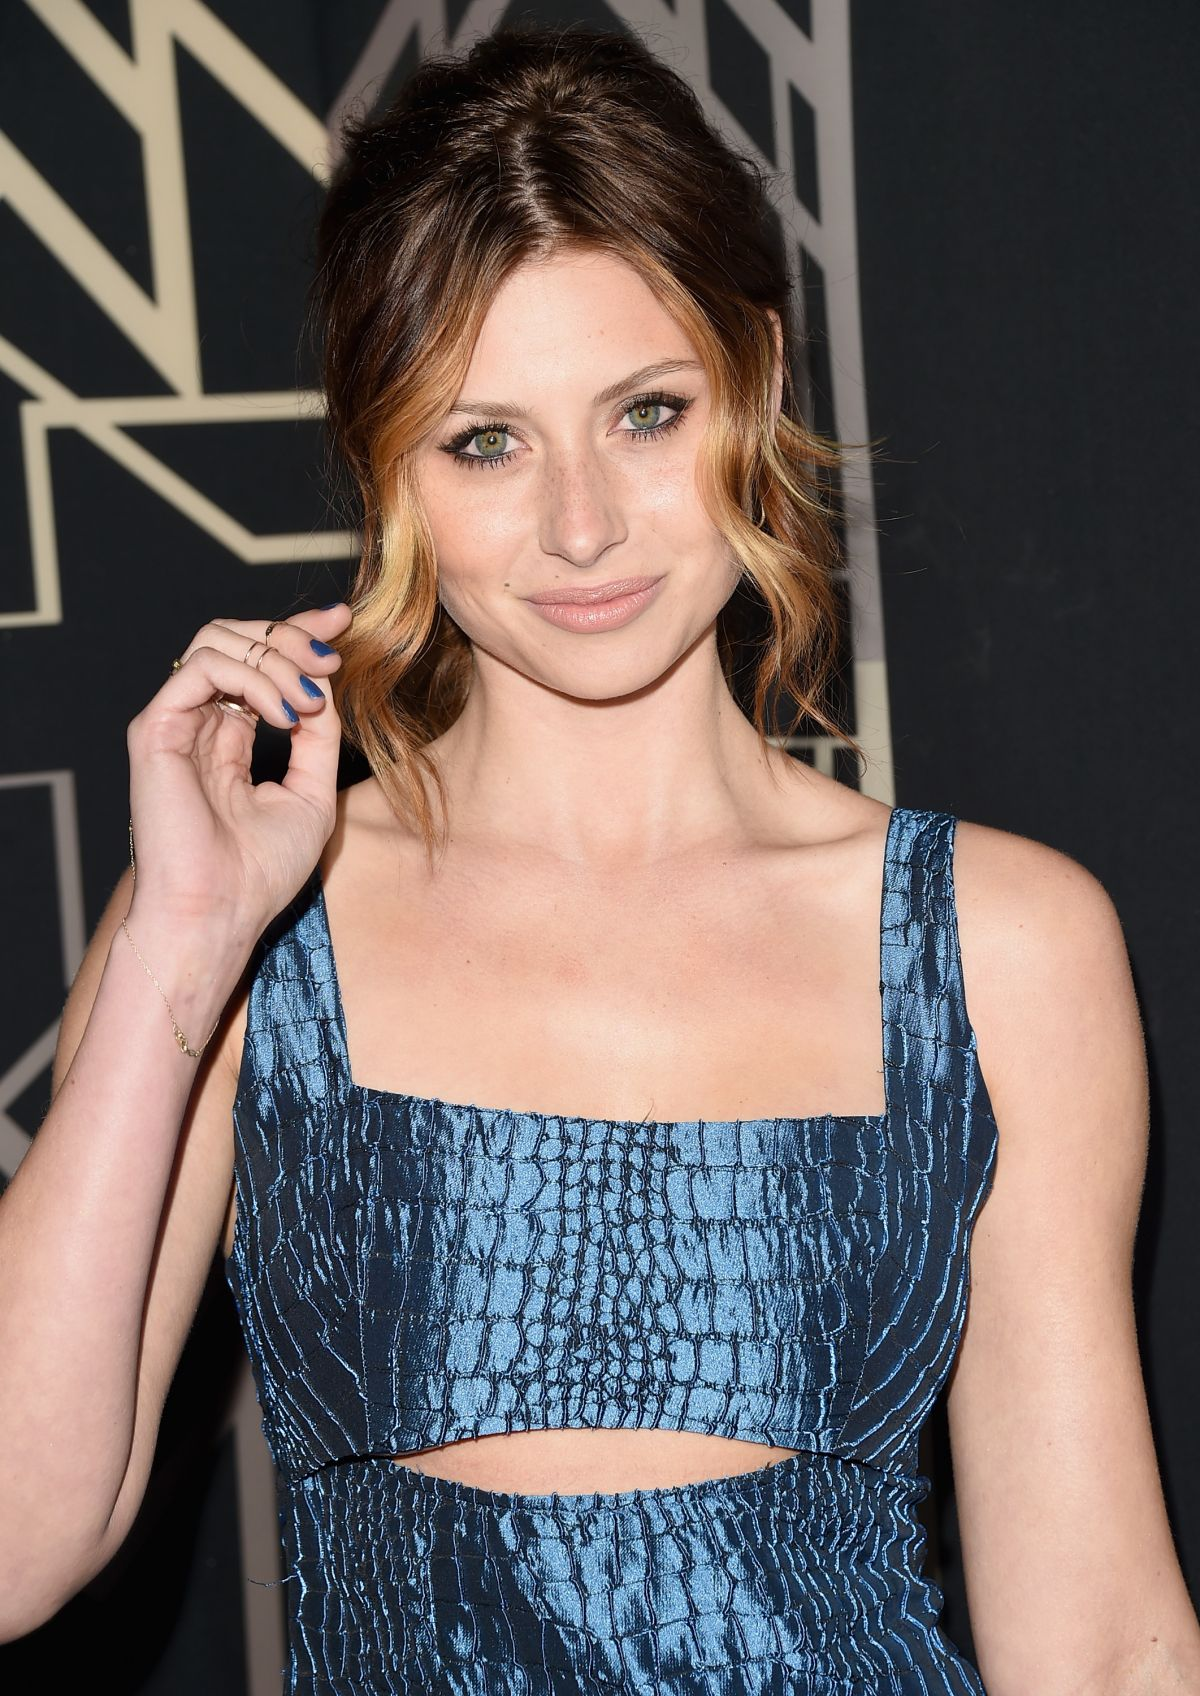 Pics Alyson Aly Michalka nudes (51 photos), Topless, Fappening, Feet, braless 2017